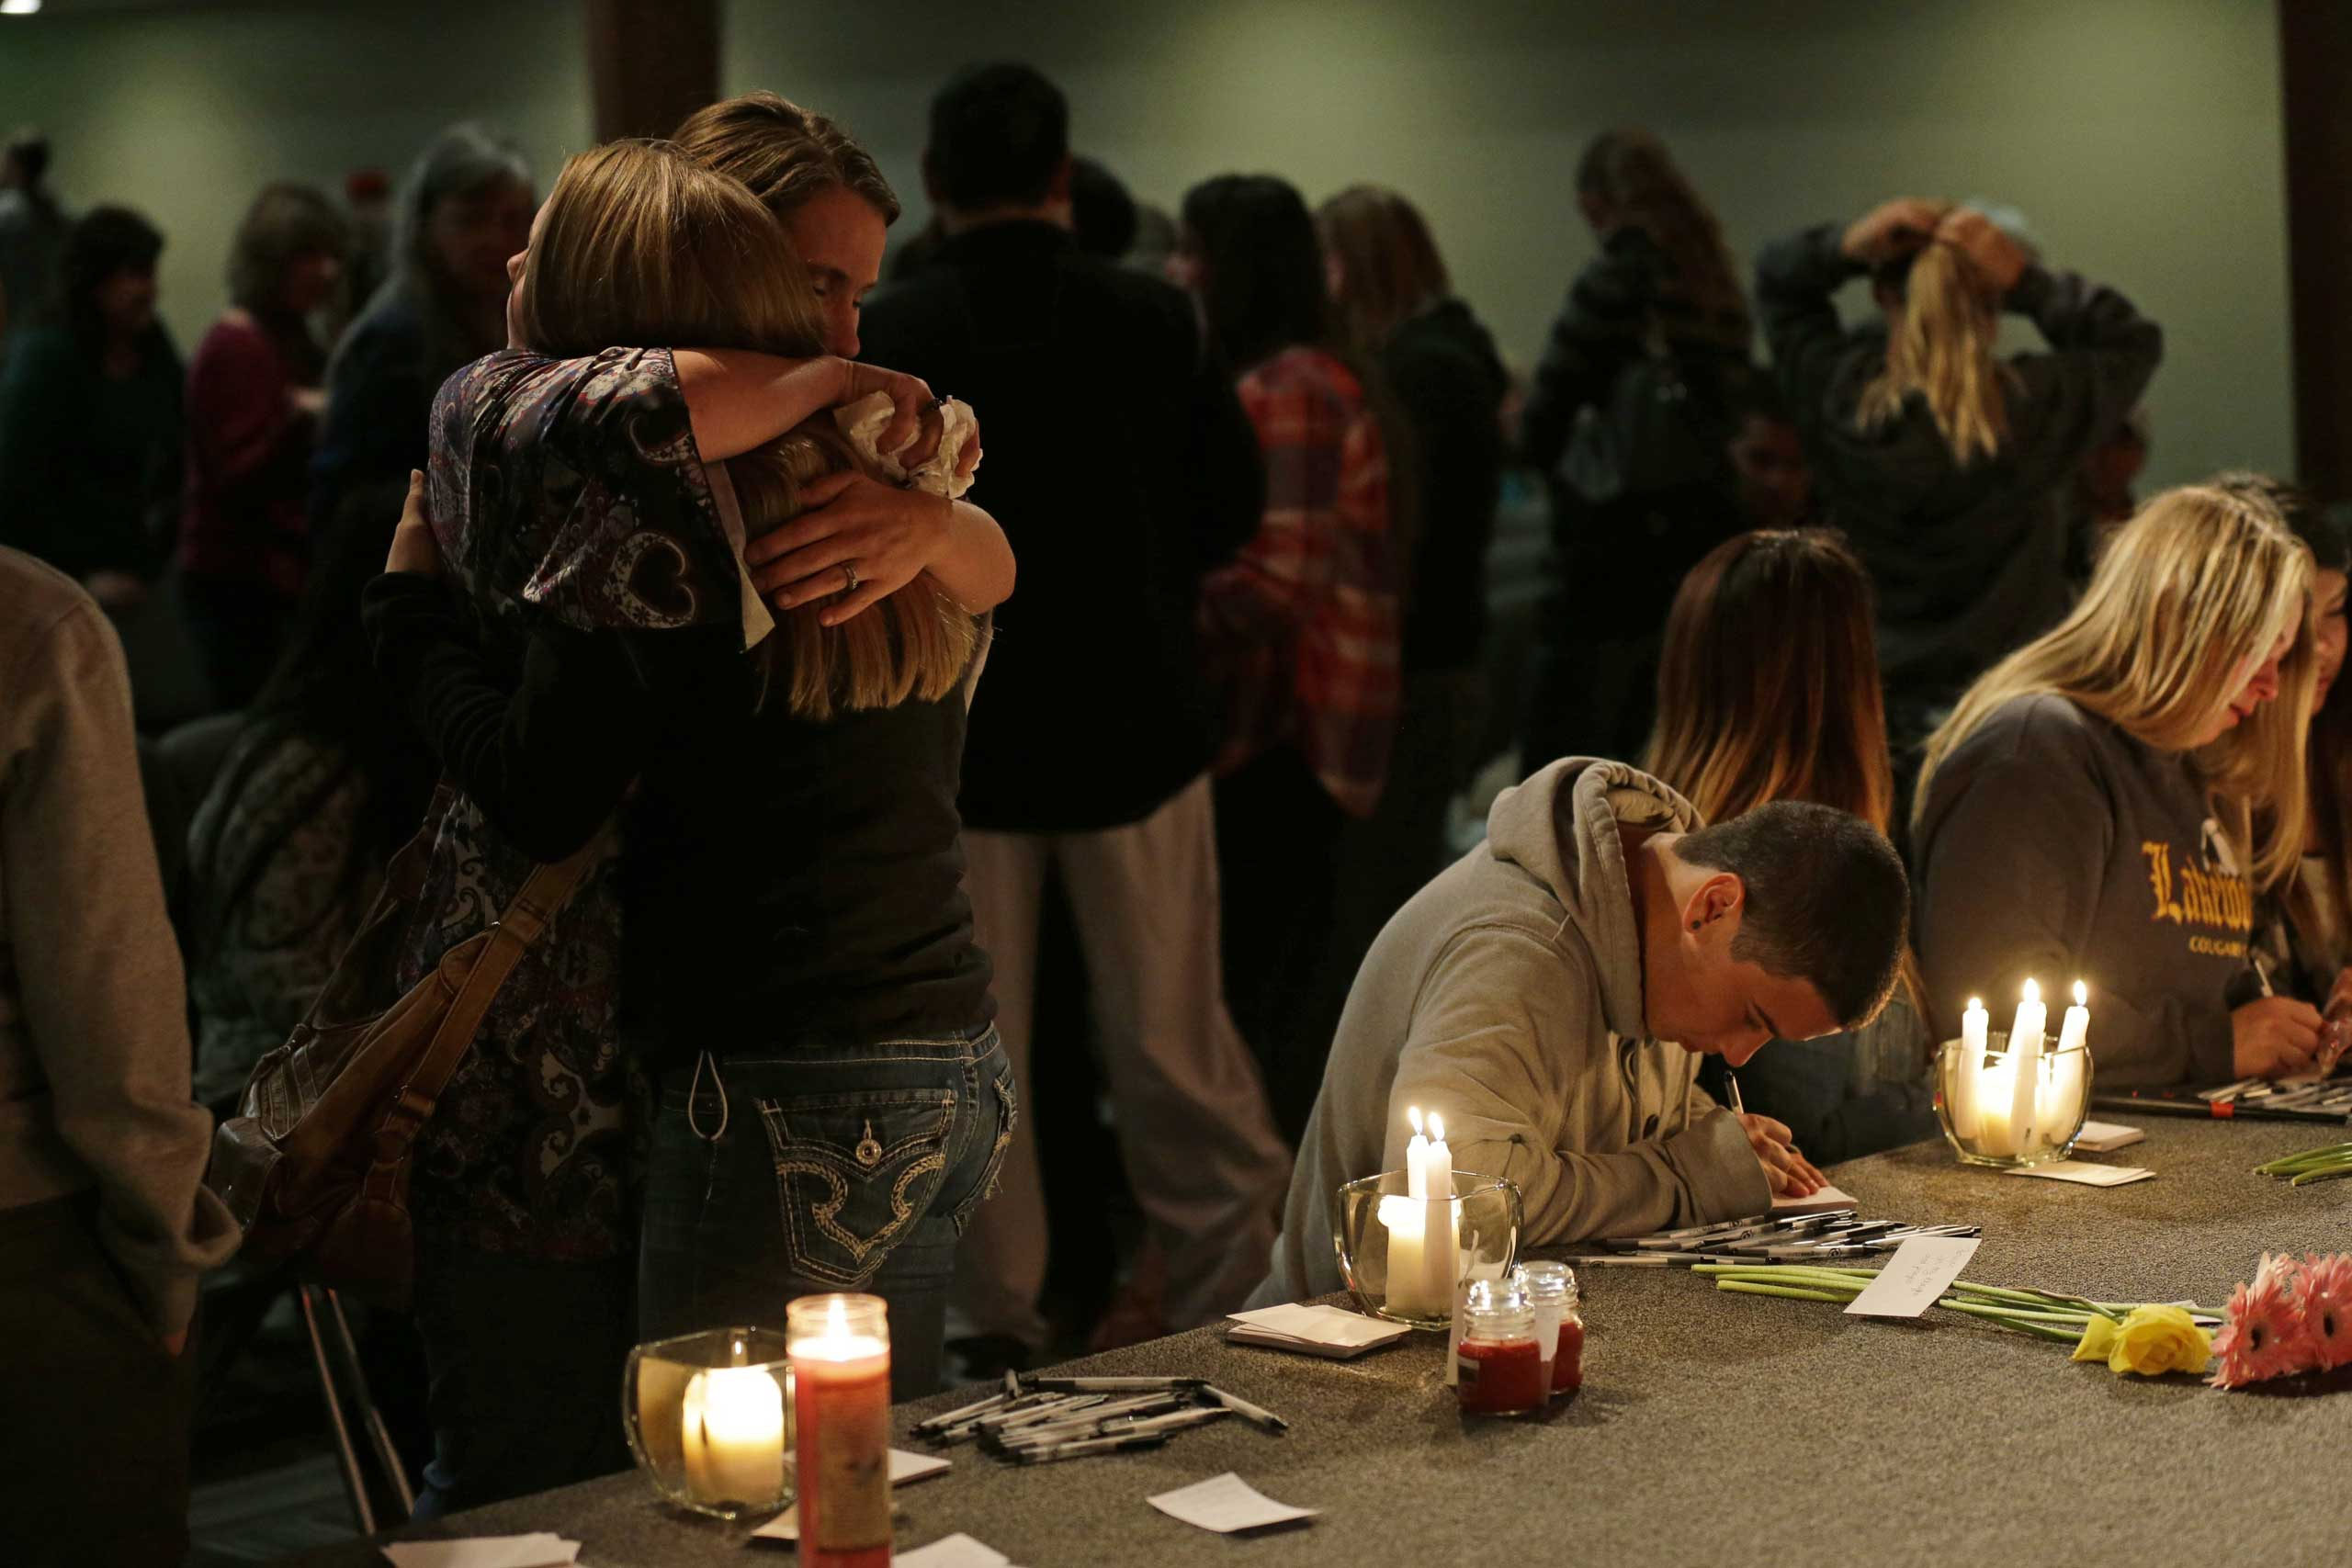 Oct. 24, 2014. Two people hug as others write messages on paper following a memorial vigil at the Grove Church in Marysville, Wash., for people affected by a shooting at Marysville Pilchuck High School earlier in the day.